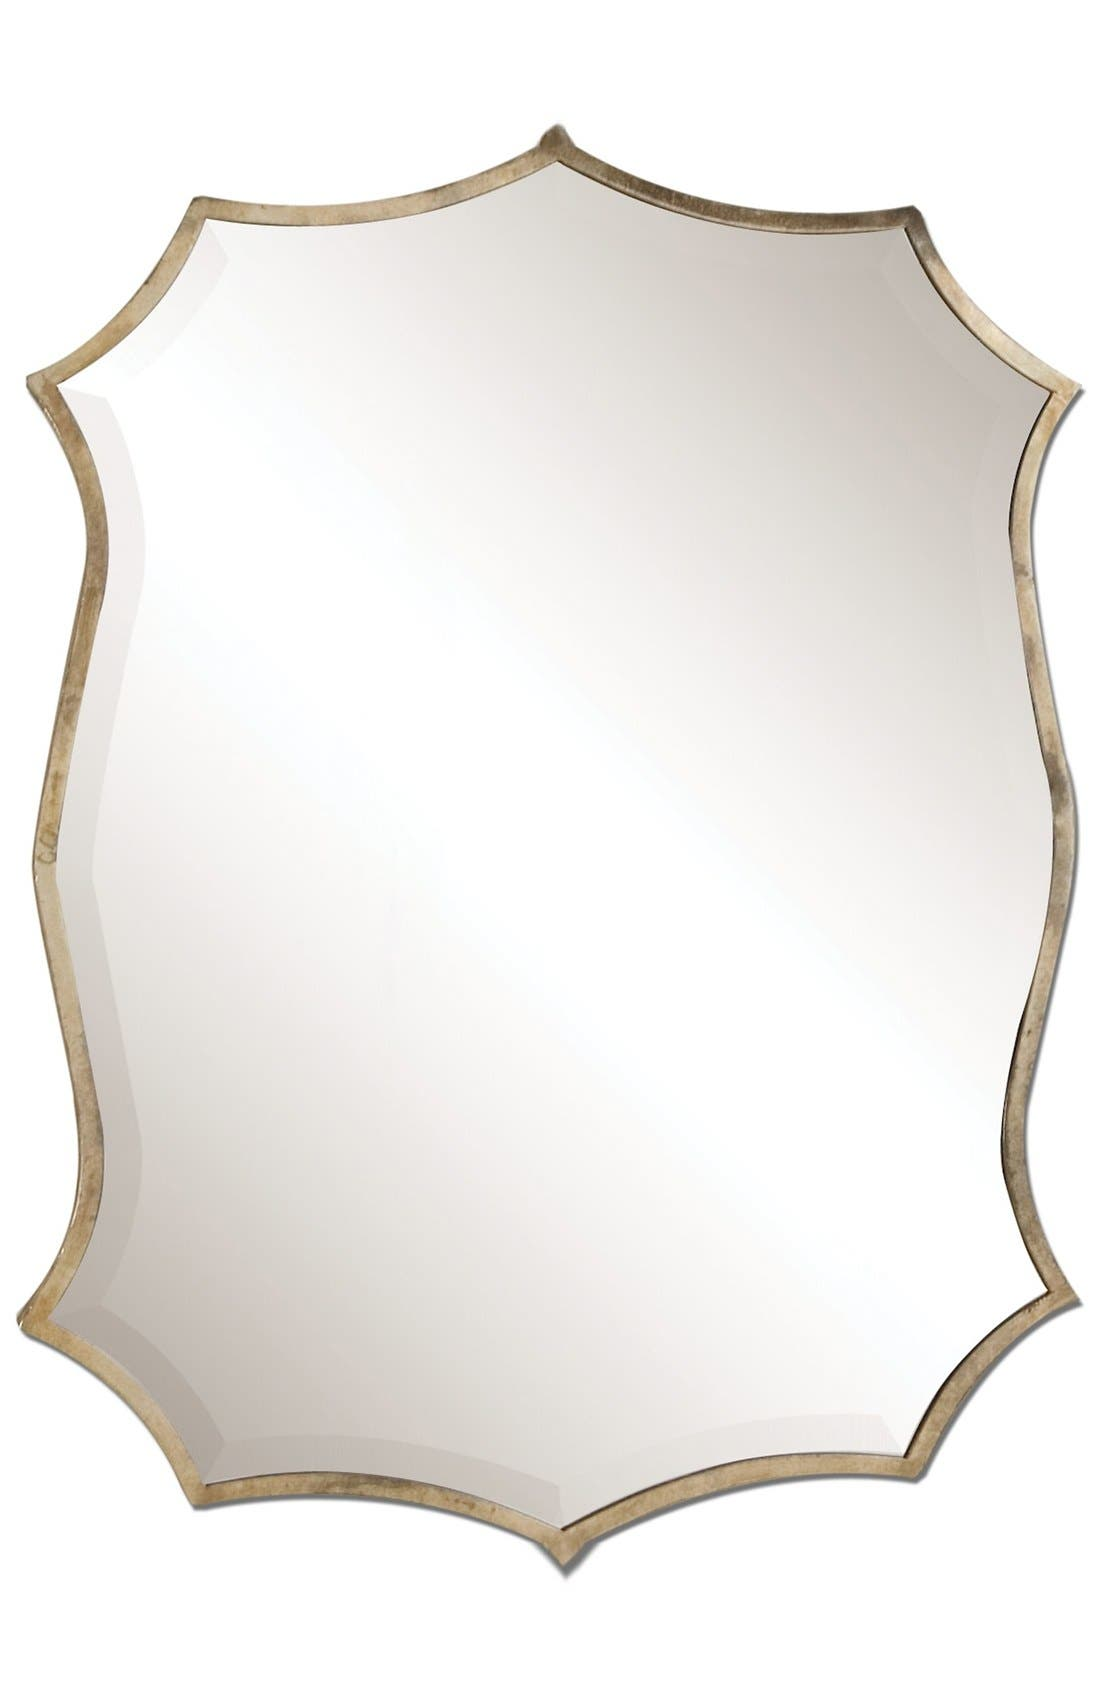 Alternate Image 1 Selected - Uttermost 'Migiana' Oxidized Nickel Wall Mirror